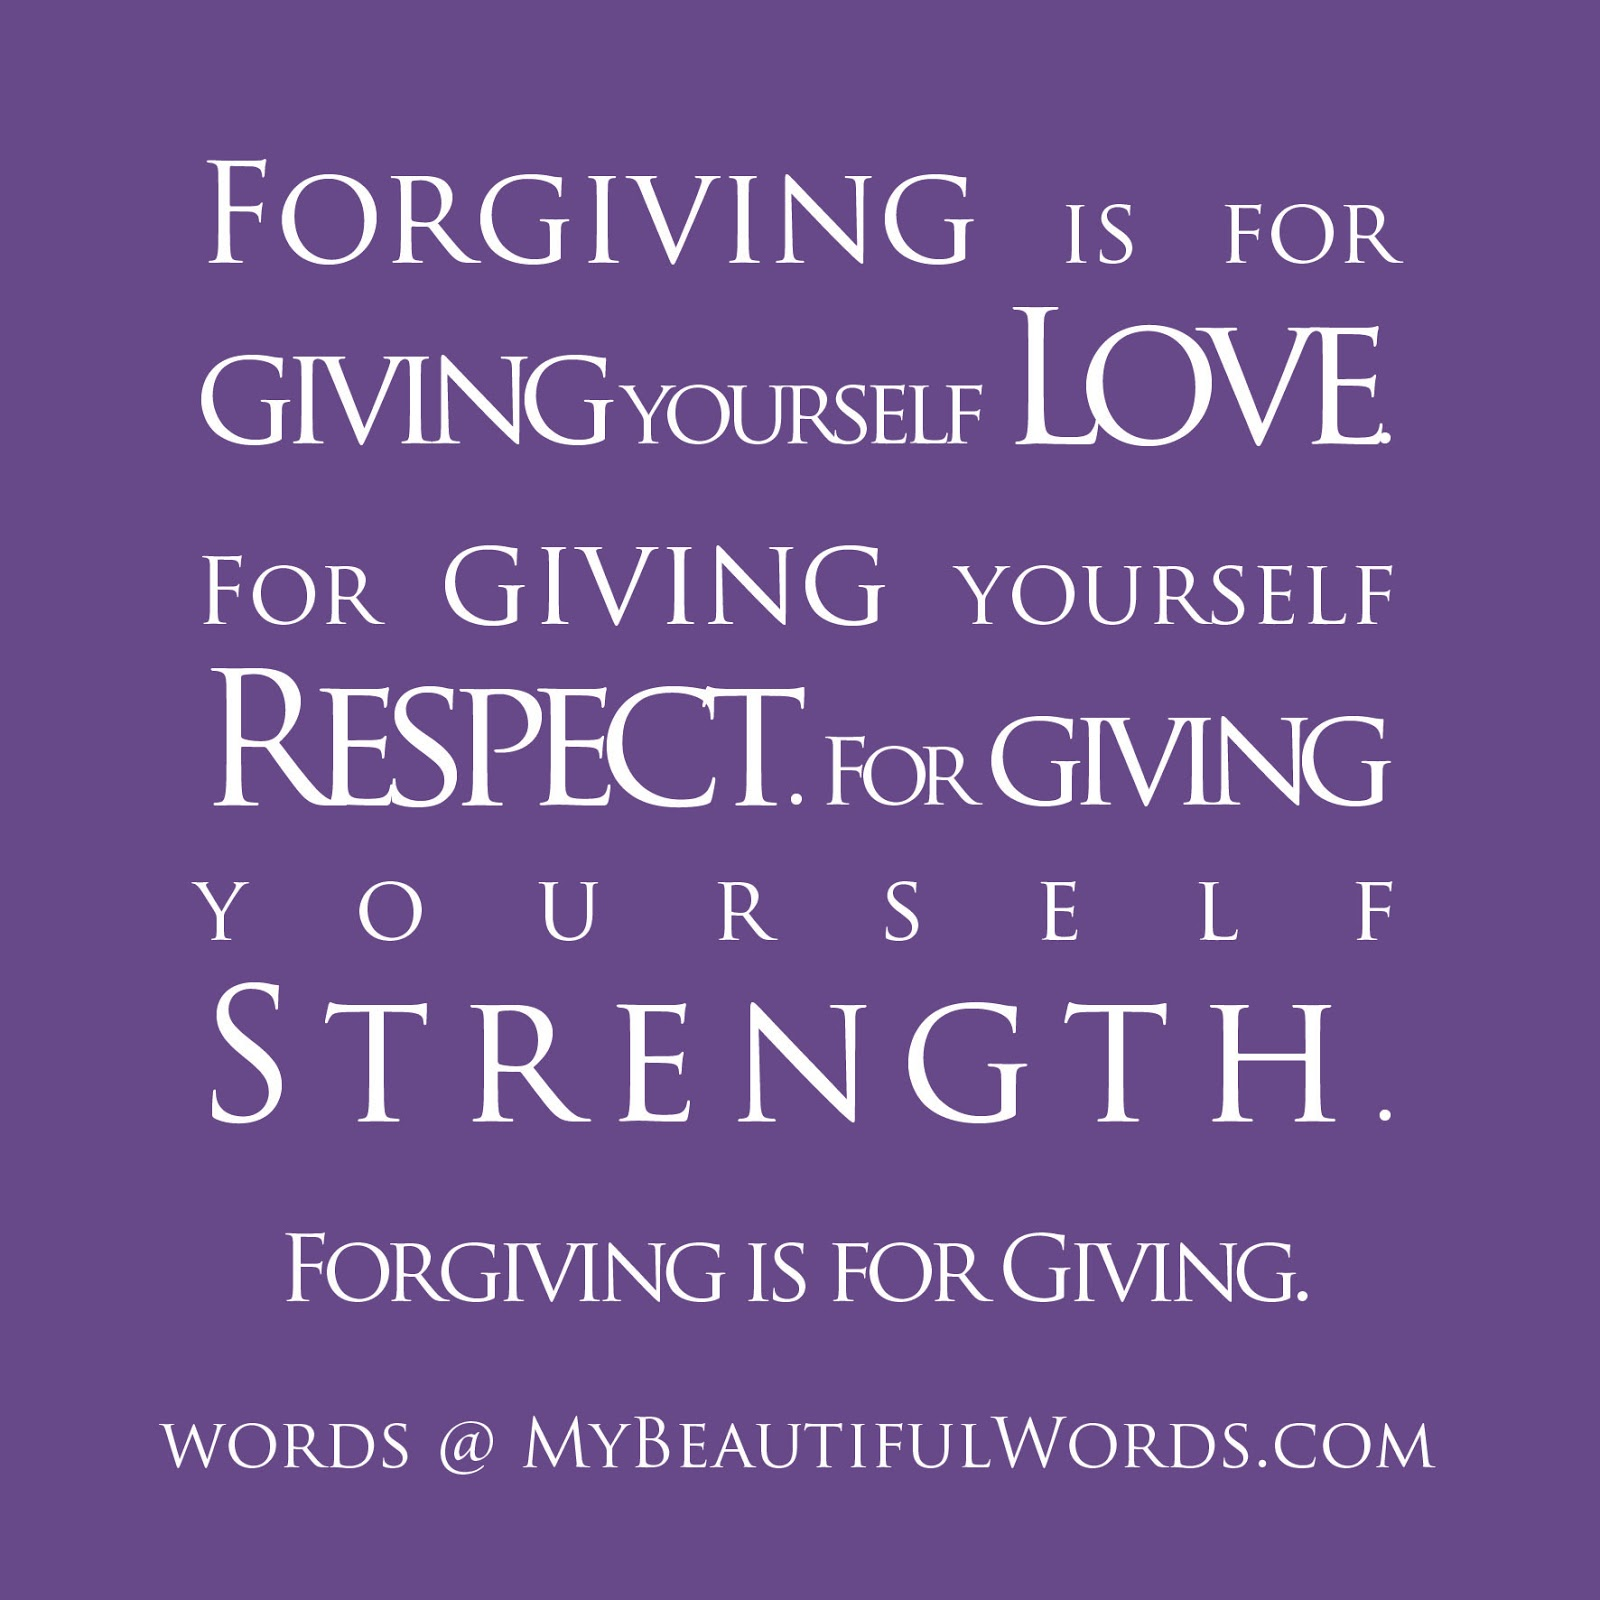 Quotes About Forgiving Yourself: Quotes About Asking For Forgiveness (62 Quotes